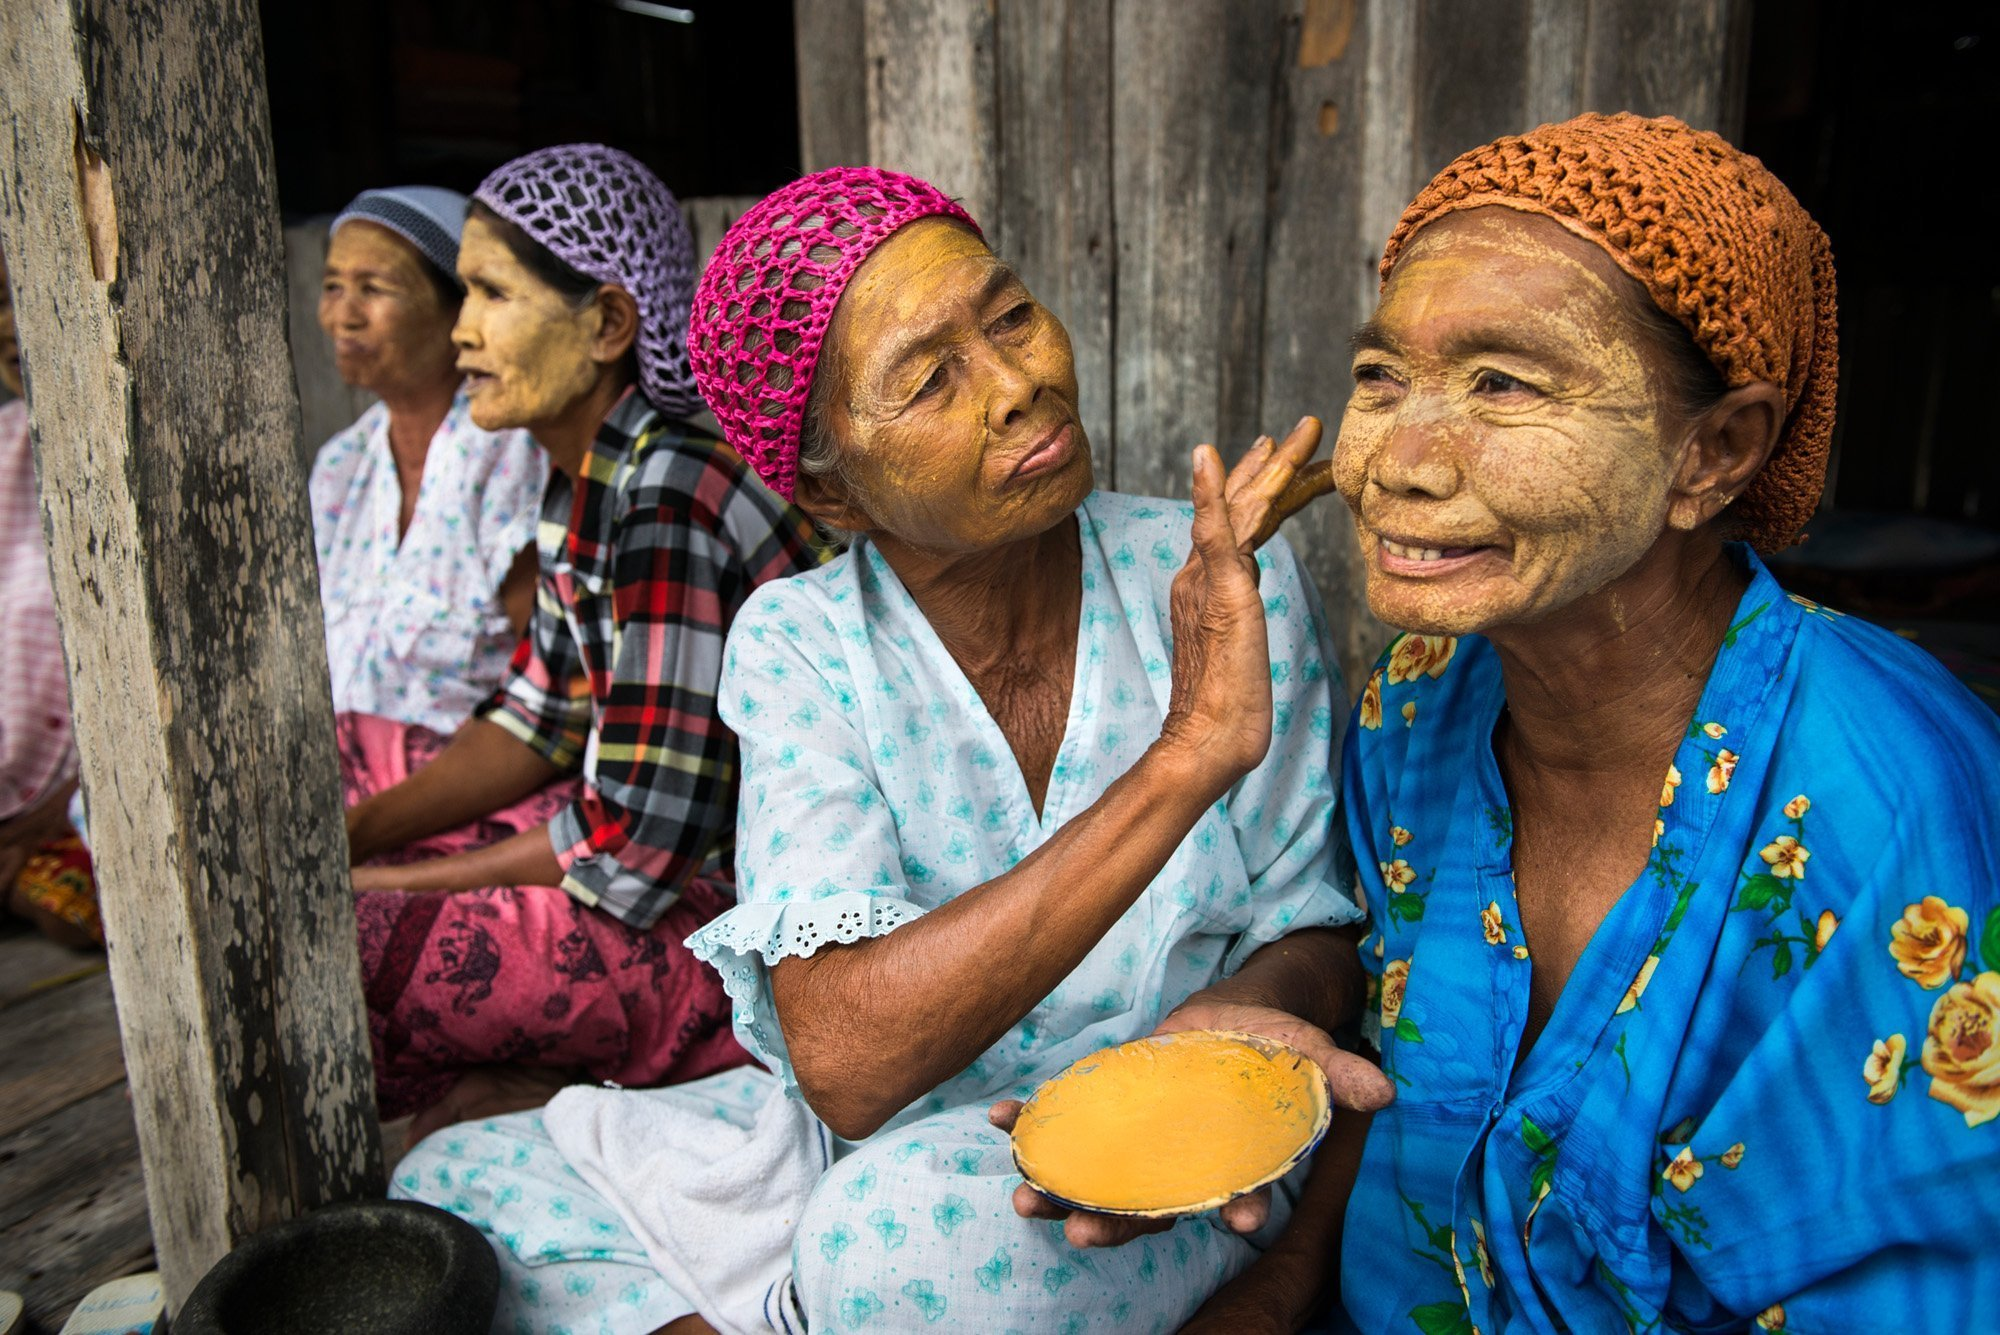 Sama-Bajau women applying a natural paste on their faces which they call burak. The paste is made from pounded rice, turmeric and some other ingredients to beautify their faces and act as a natural sunblock. (Tawi-Tawi, Philippines)